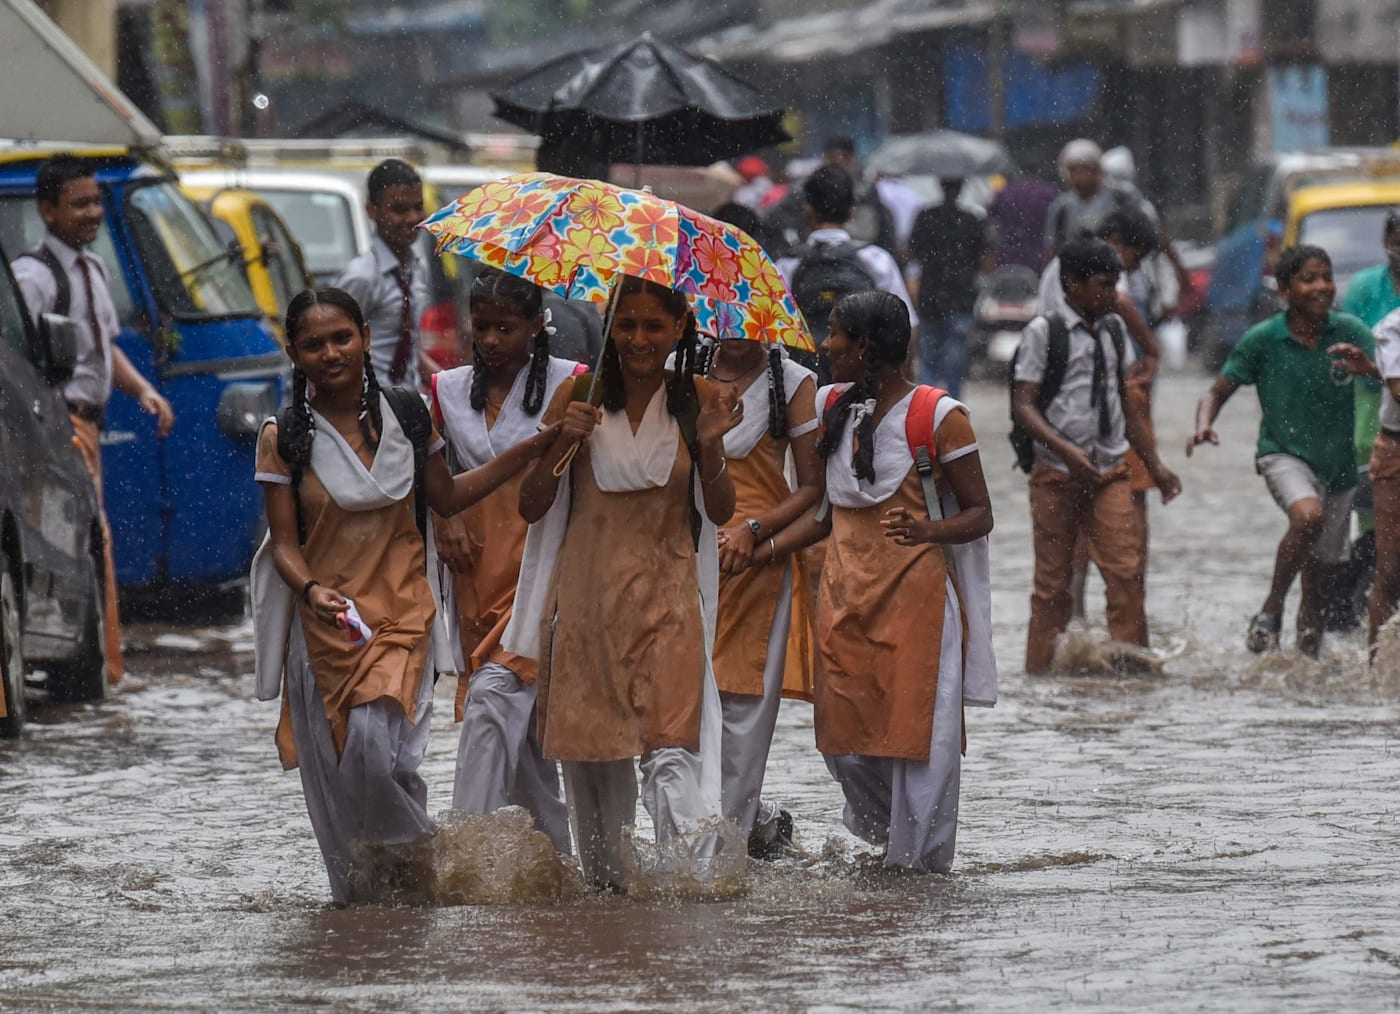 India is building a monsoon-predicting supercomputer